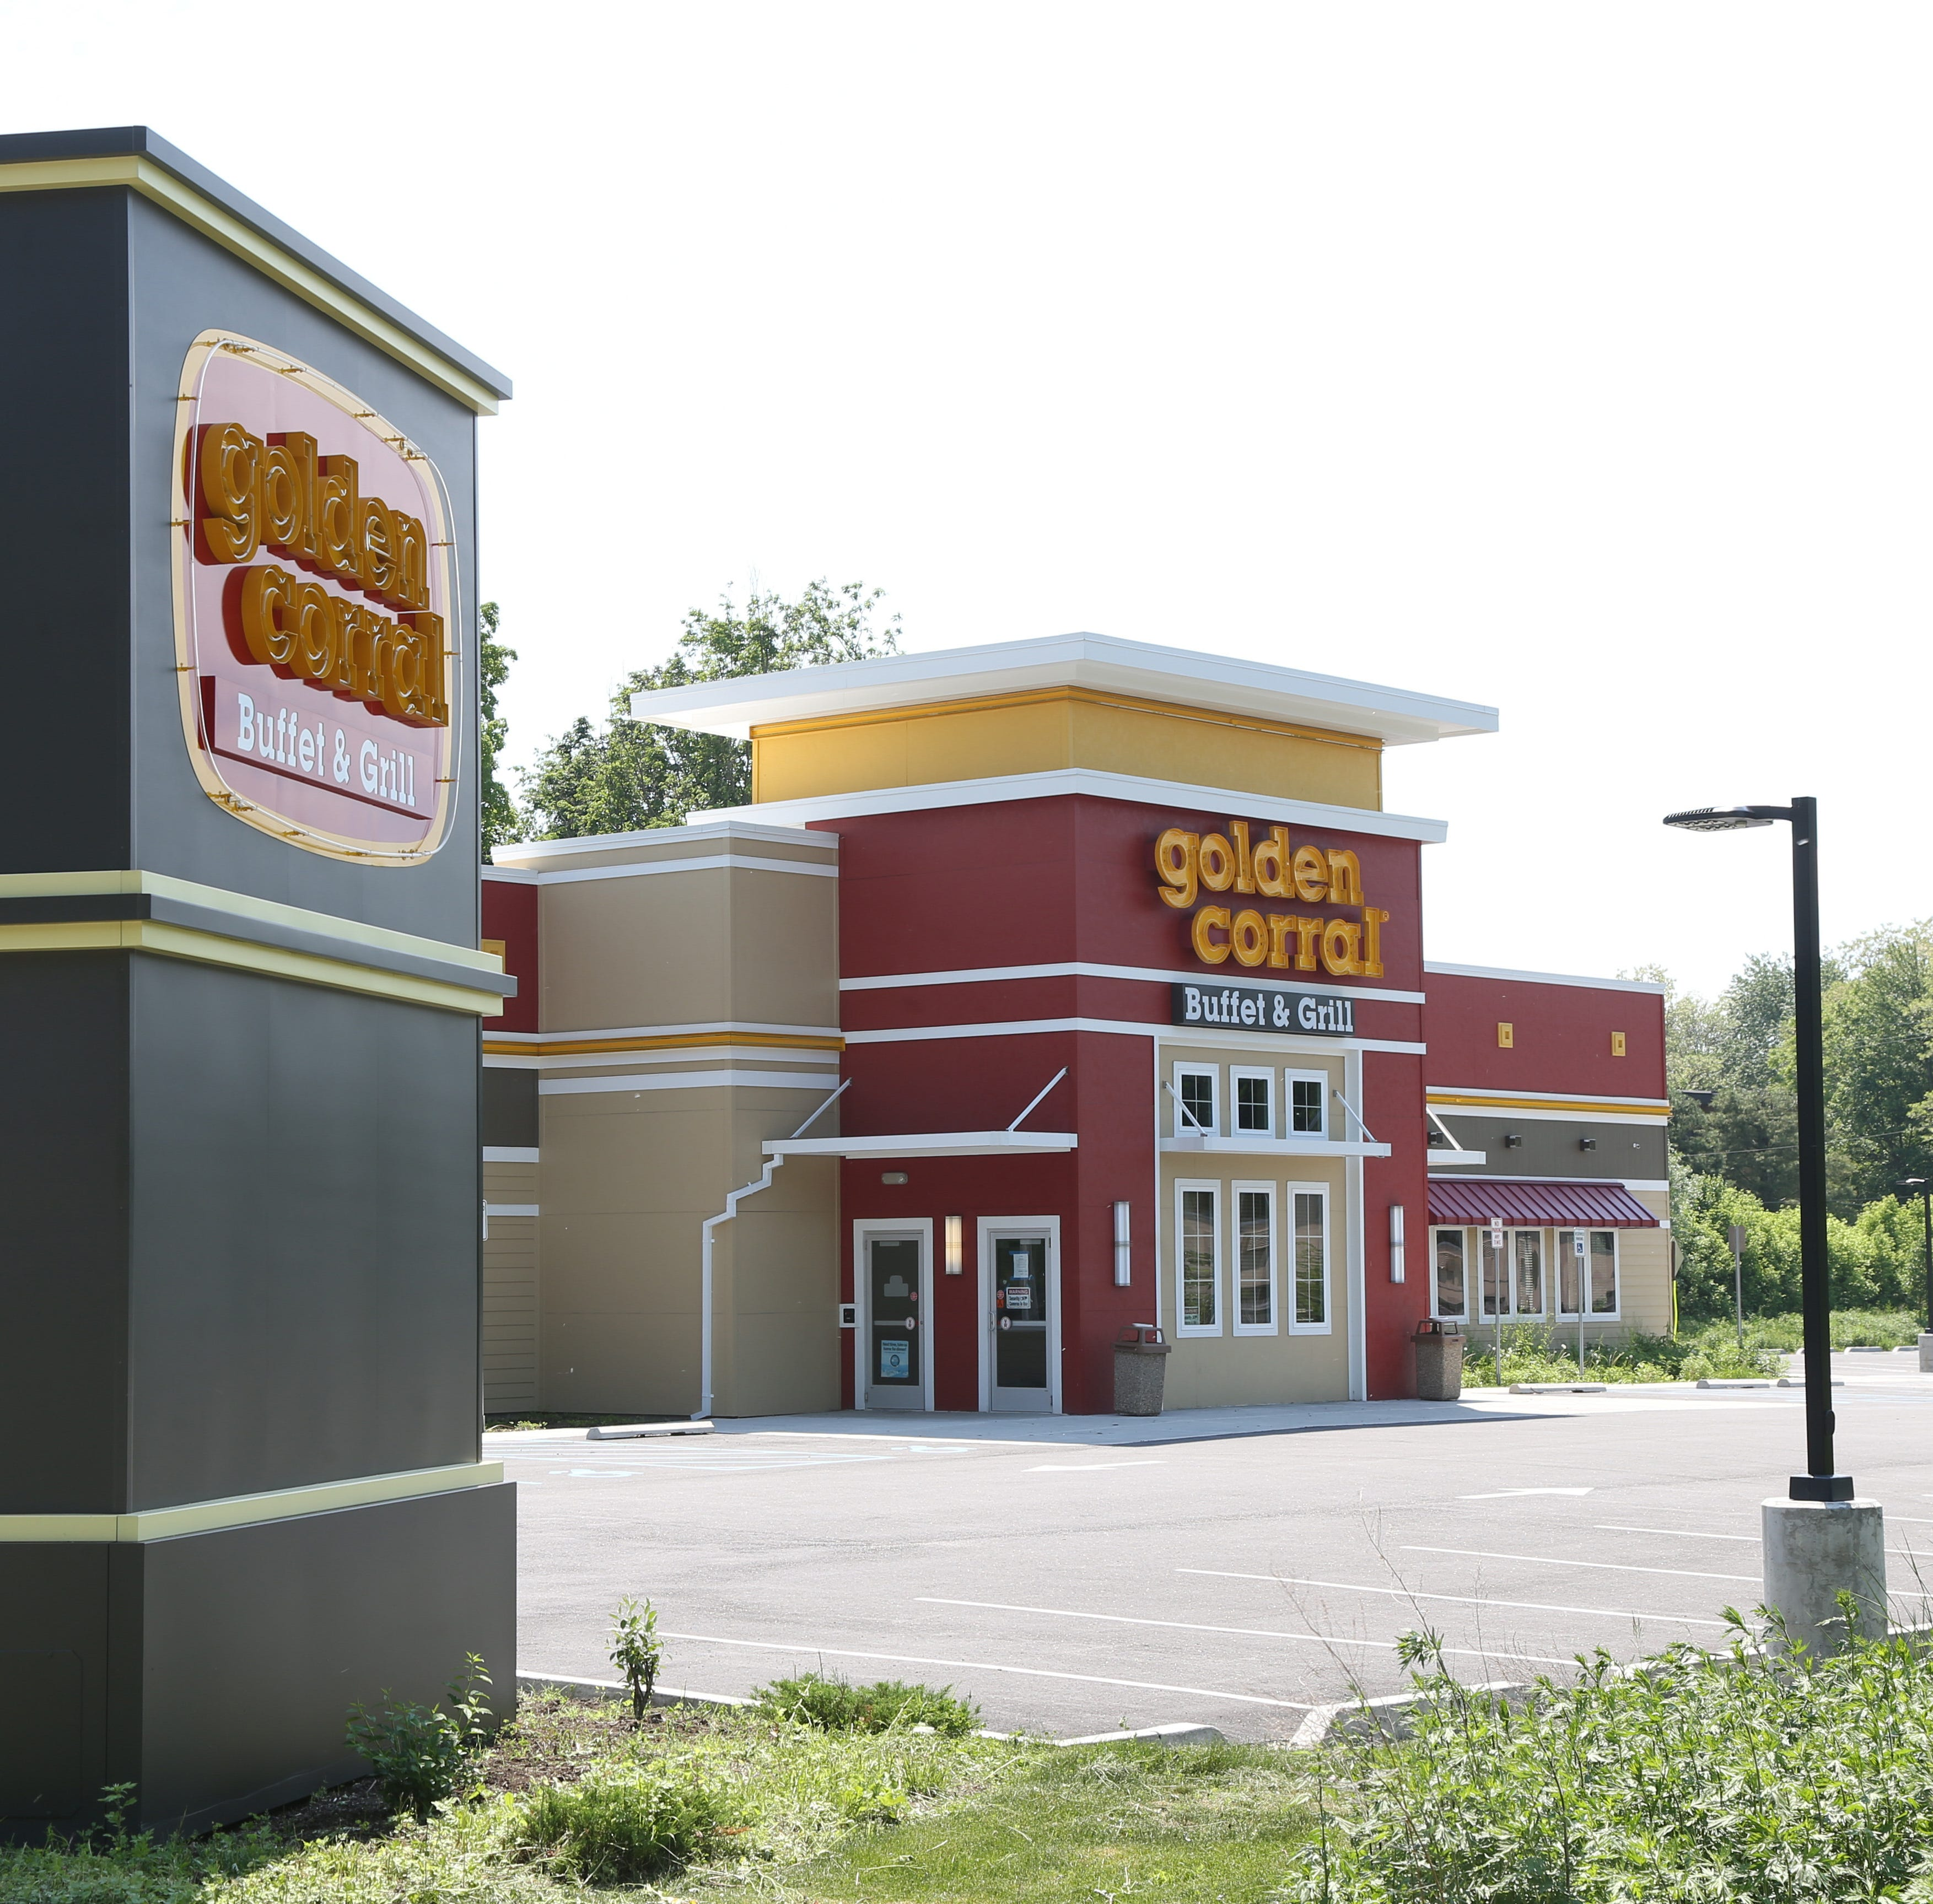 Golden Corral's history in Poughkeepsie